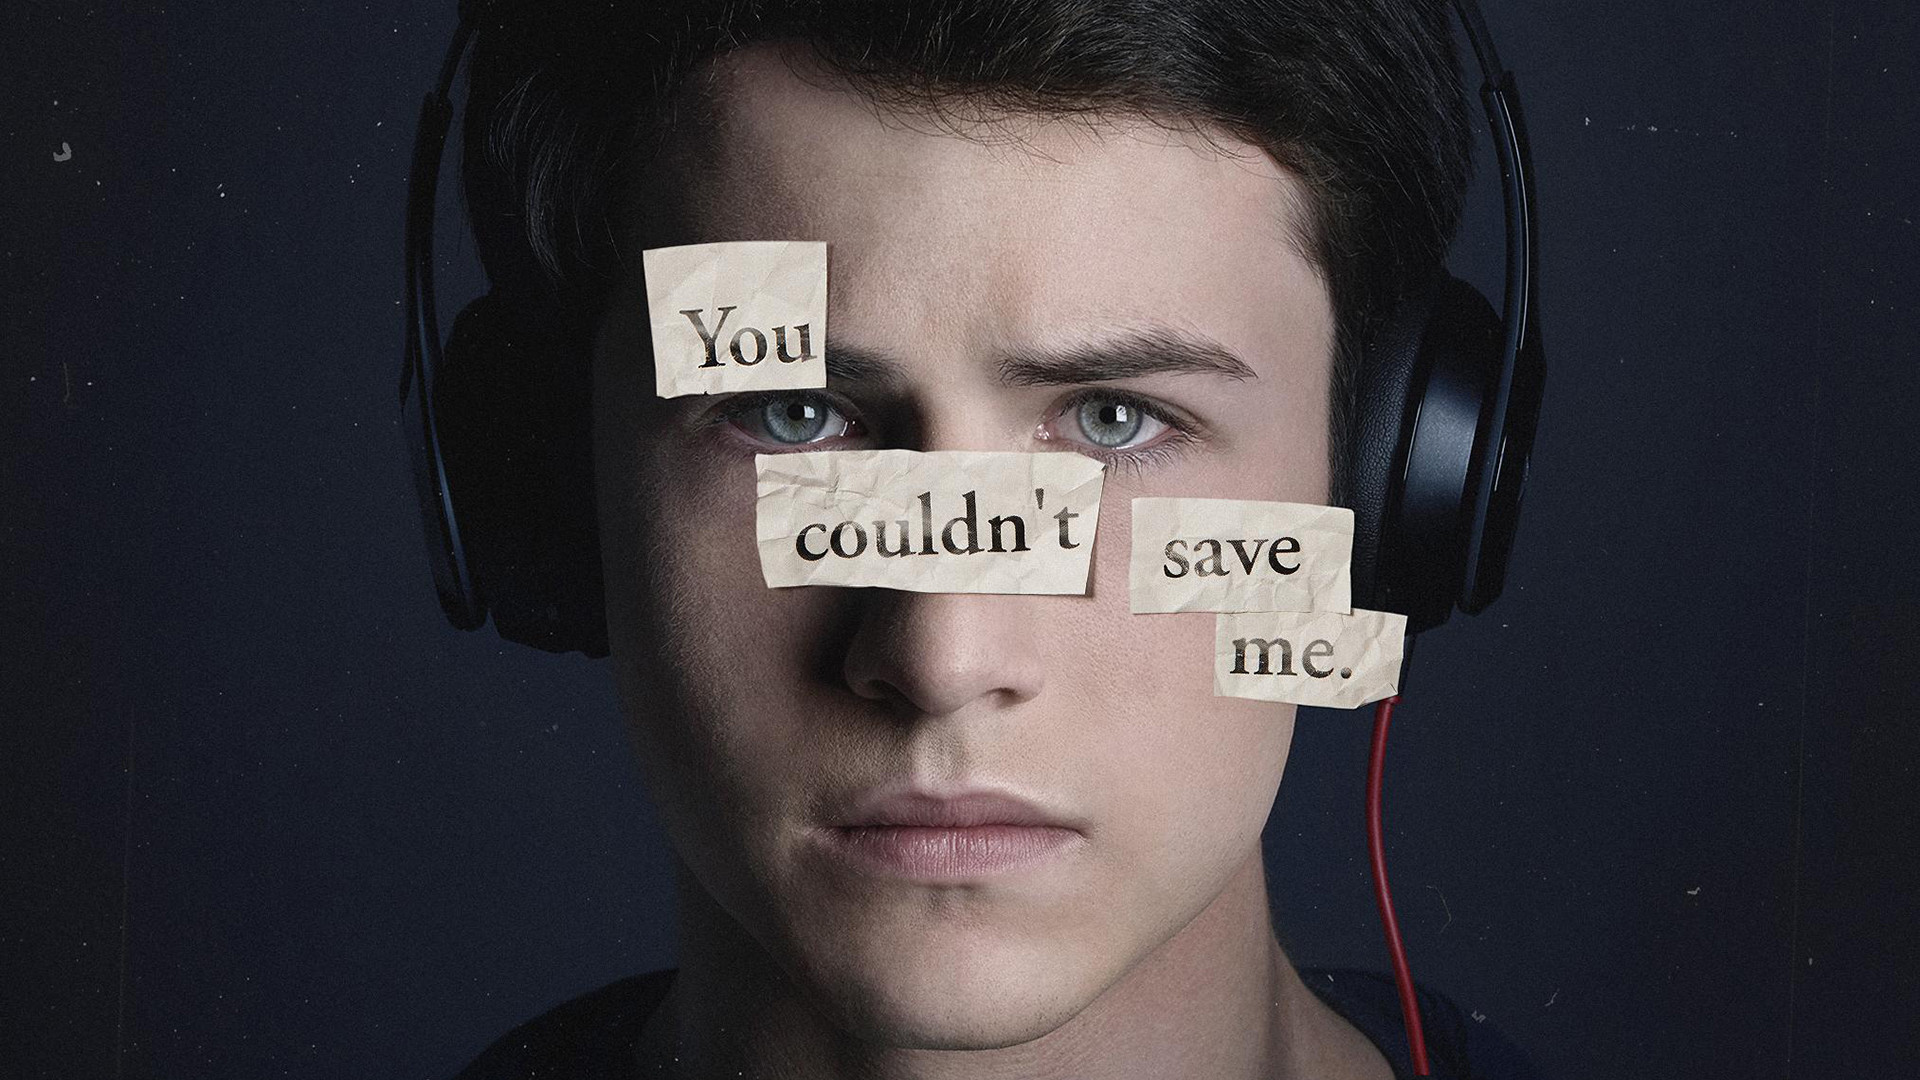 1920x1080 13 Reasons Why (Netflix series) images 13 Reasons Why HD wallpaper and  background photos